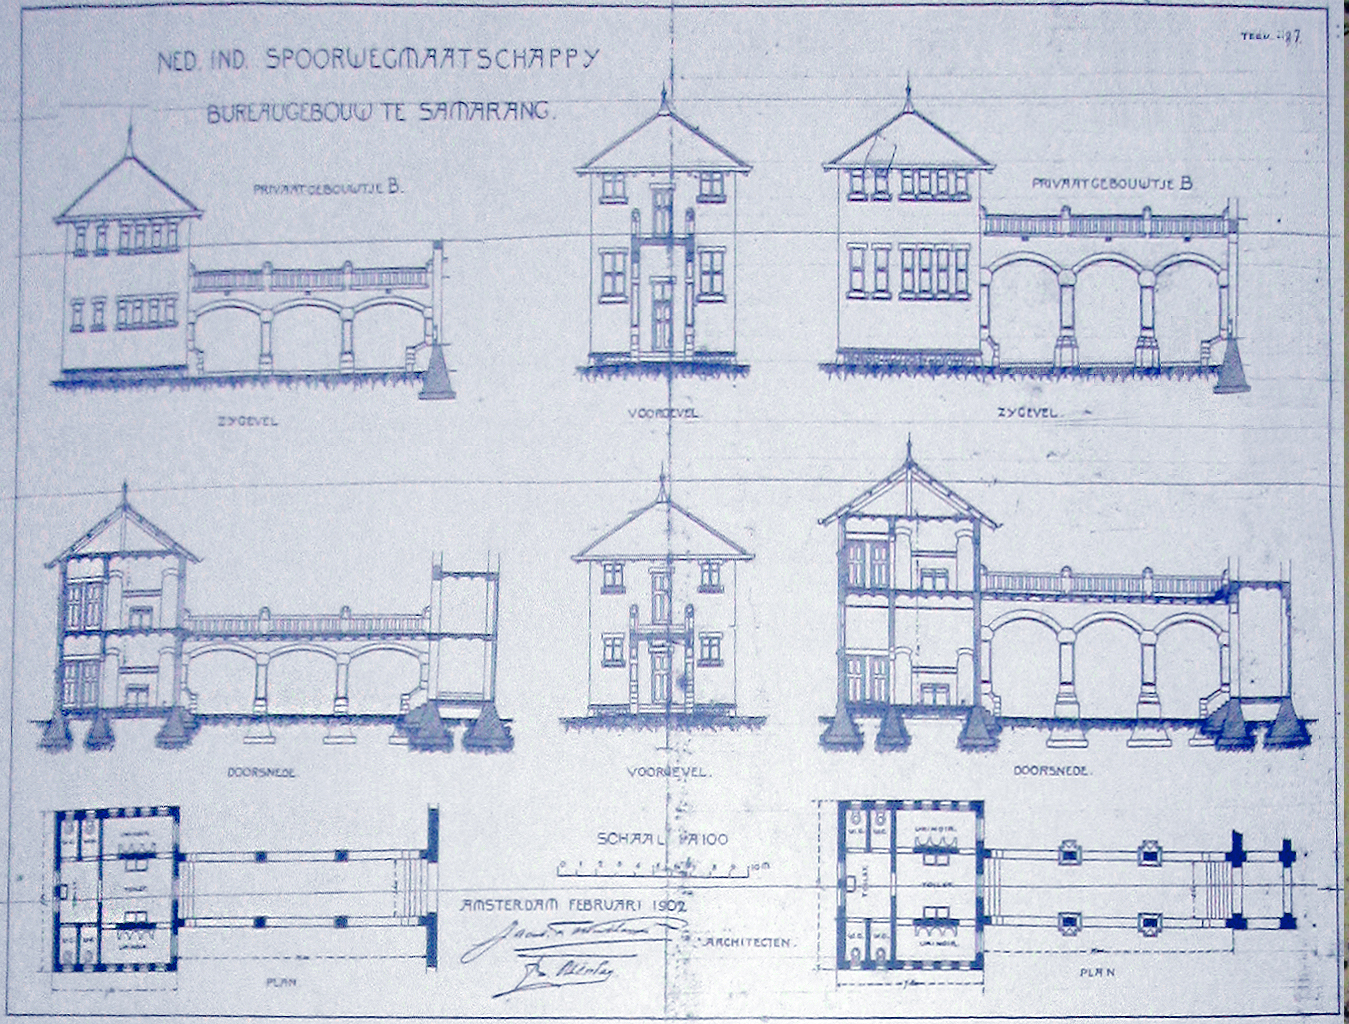 Fileblueprints for lawang sewug wikimedia commons fileblueprints for lawang sewug malvernweather Images